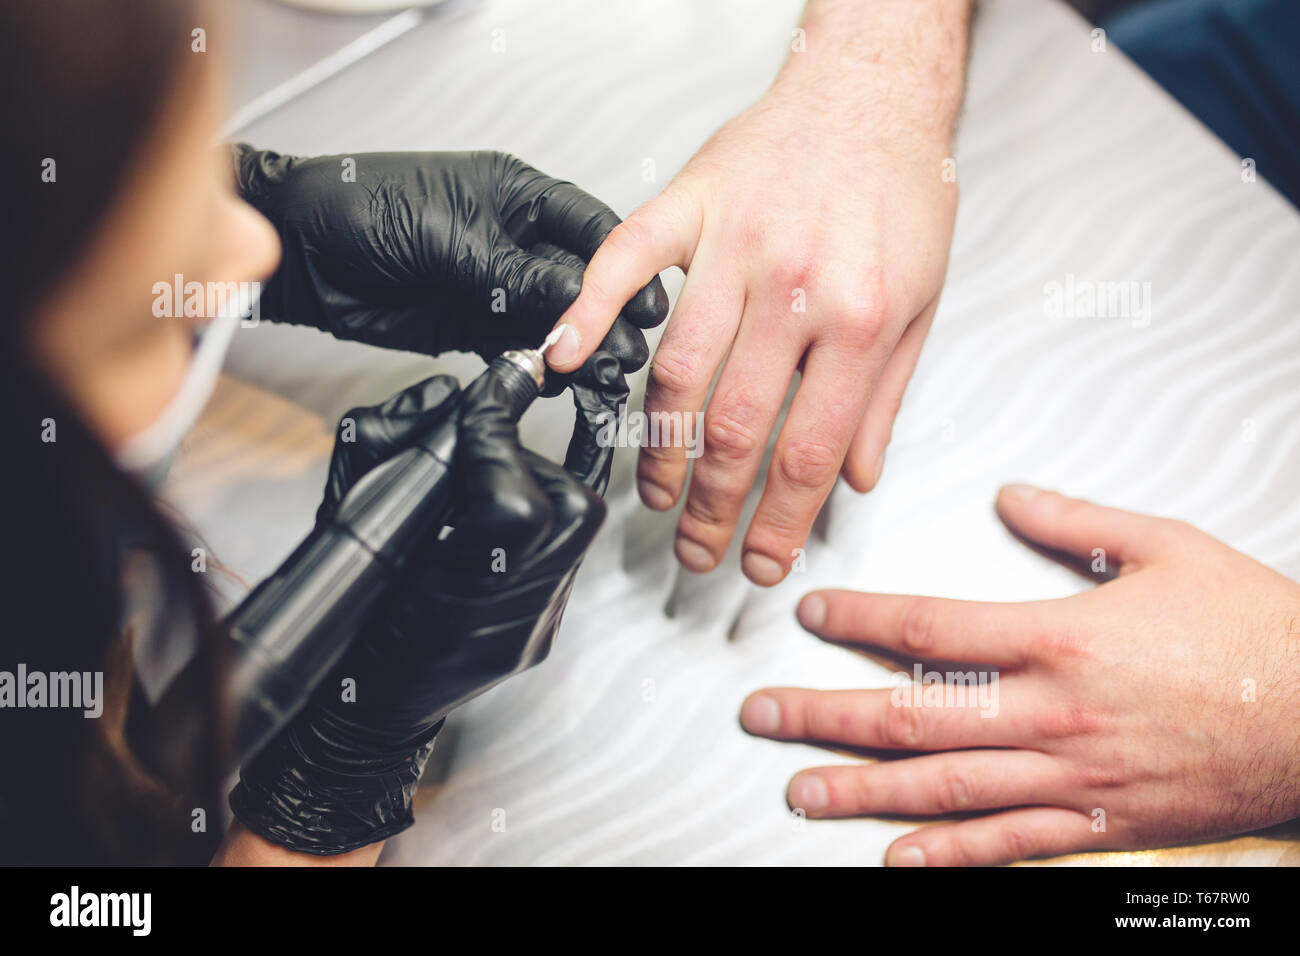 Men's manicure. Professional manicure for man by manicure machine. A man receiving a manicure in the beauty salon. Beautician master trimming and - Stock Image